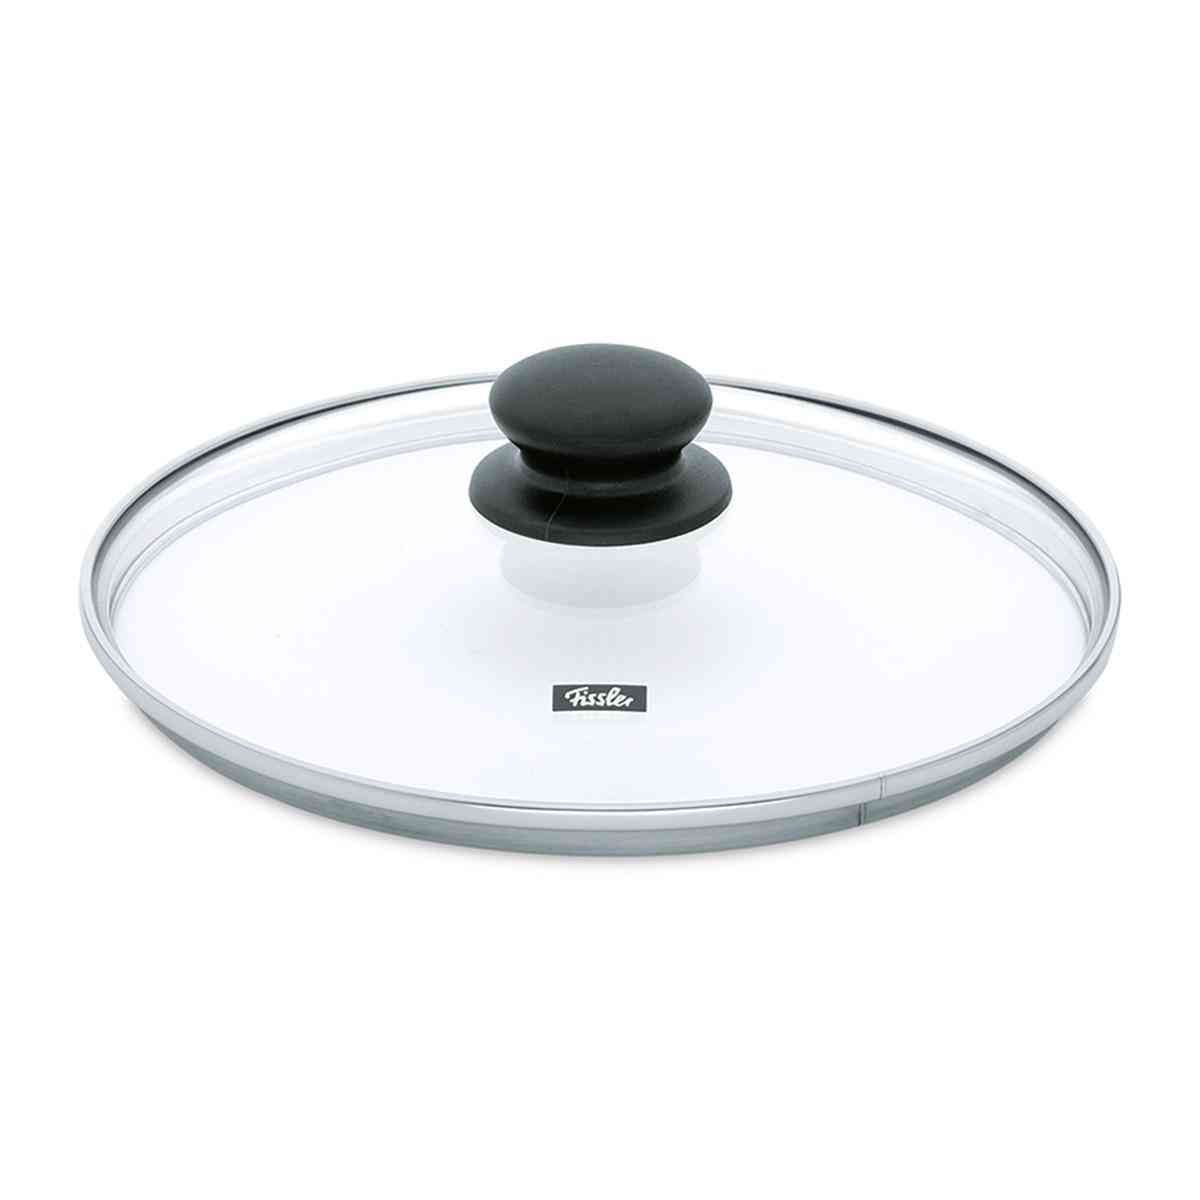 "Glass Lid for all 10.25"" Pots especially Pressure Cooker"